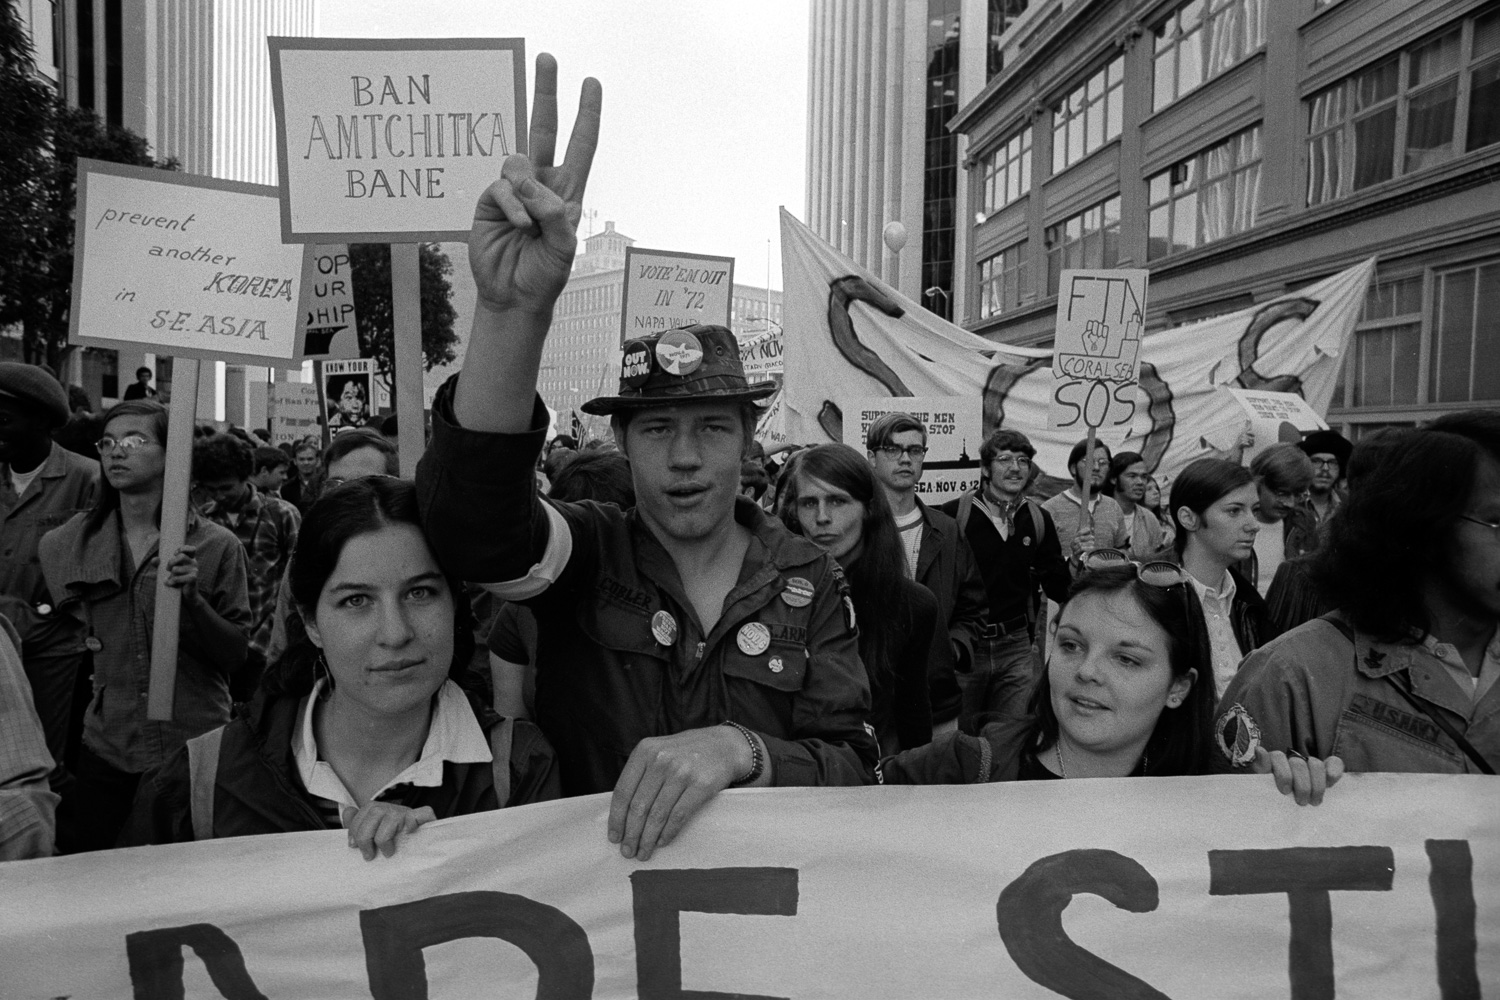 This anti-war march threaded many issues together, including the banning of nuclear weapons testing in  Amchitka, Alaska.